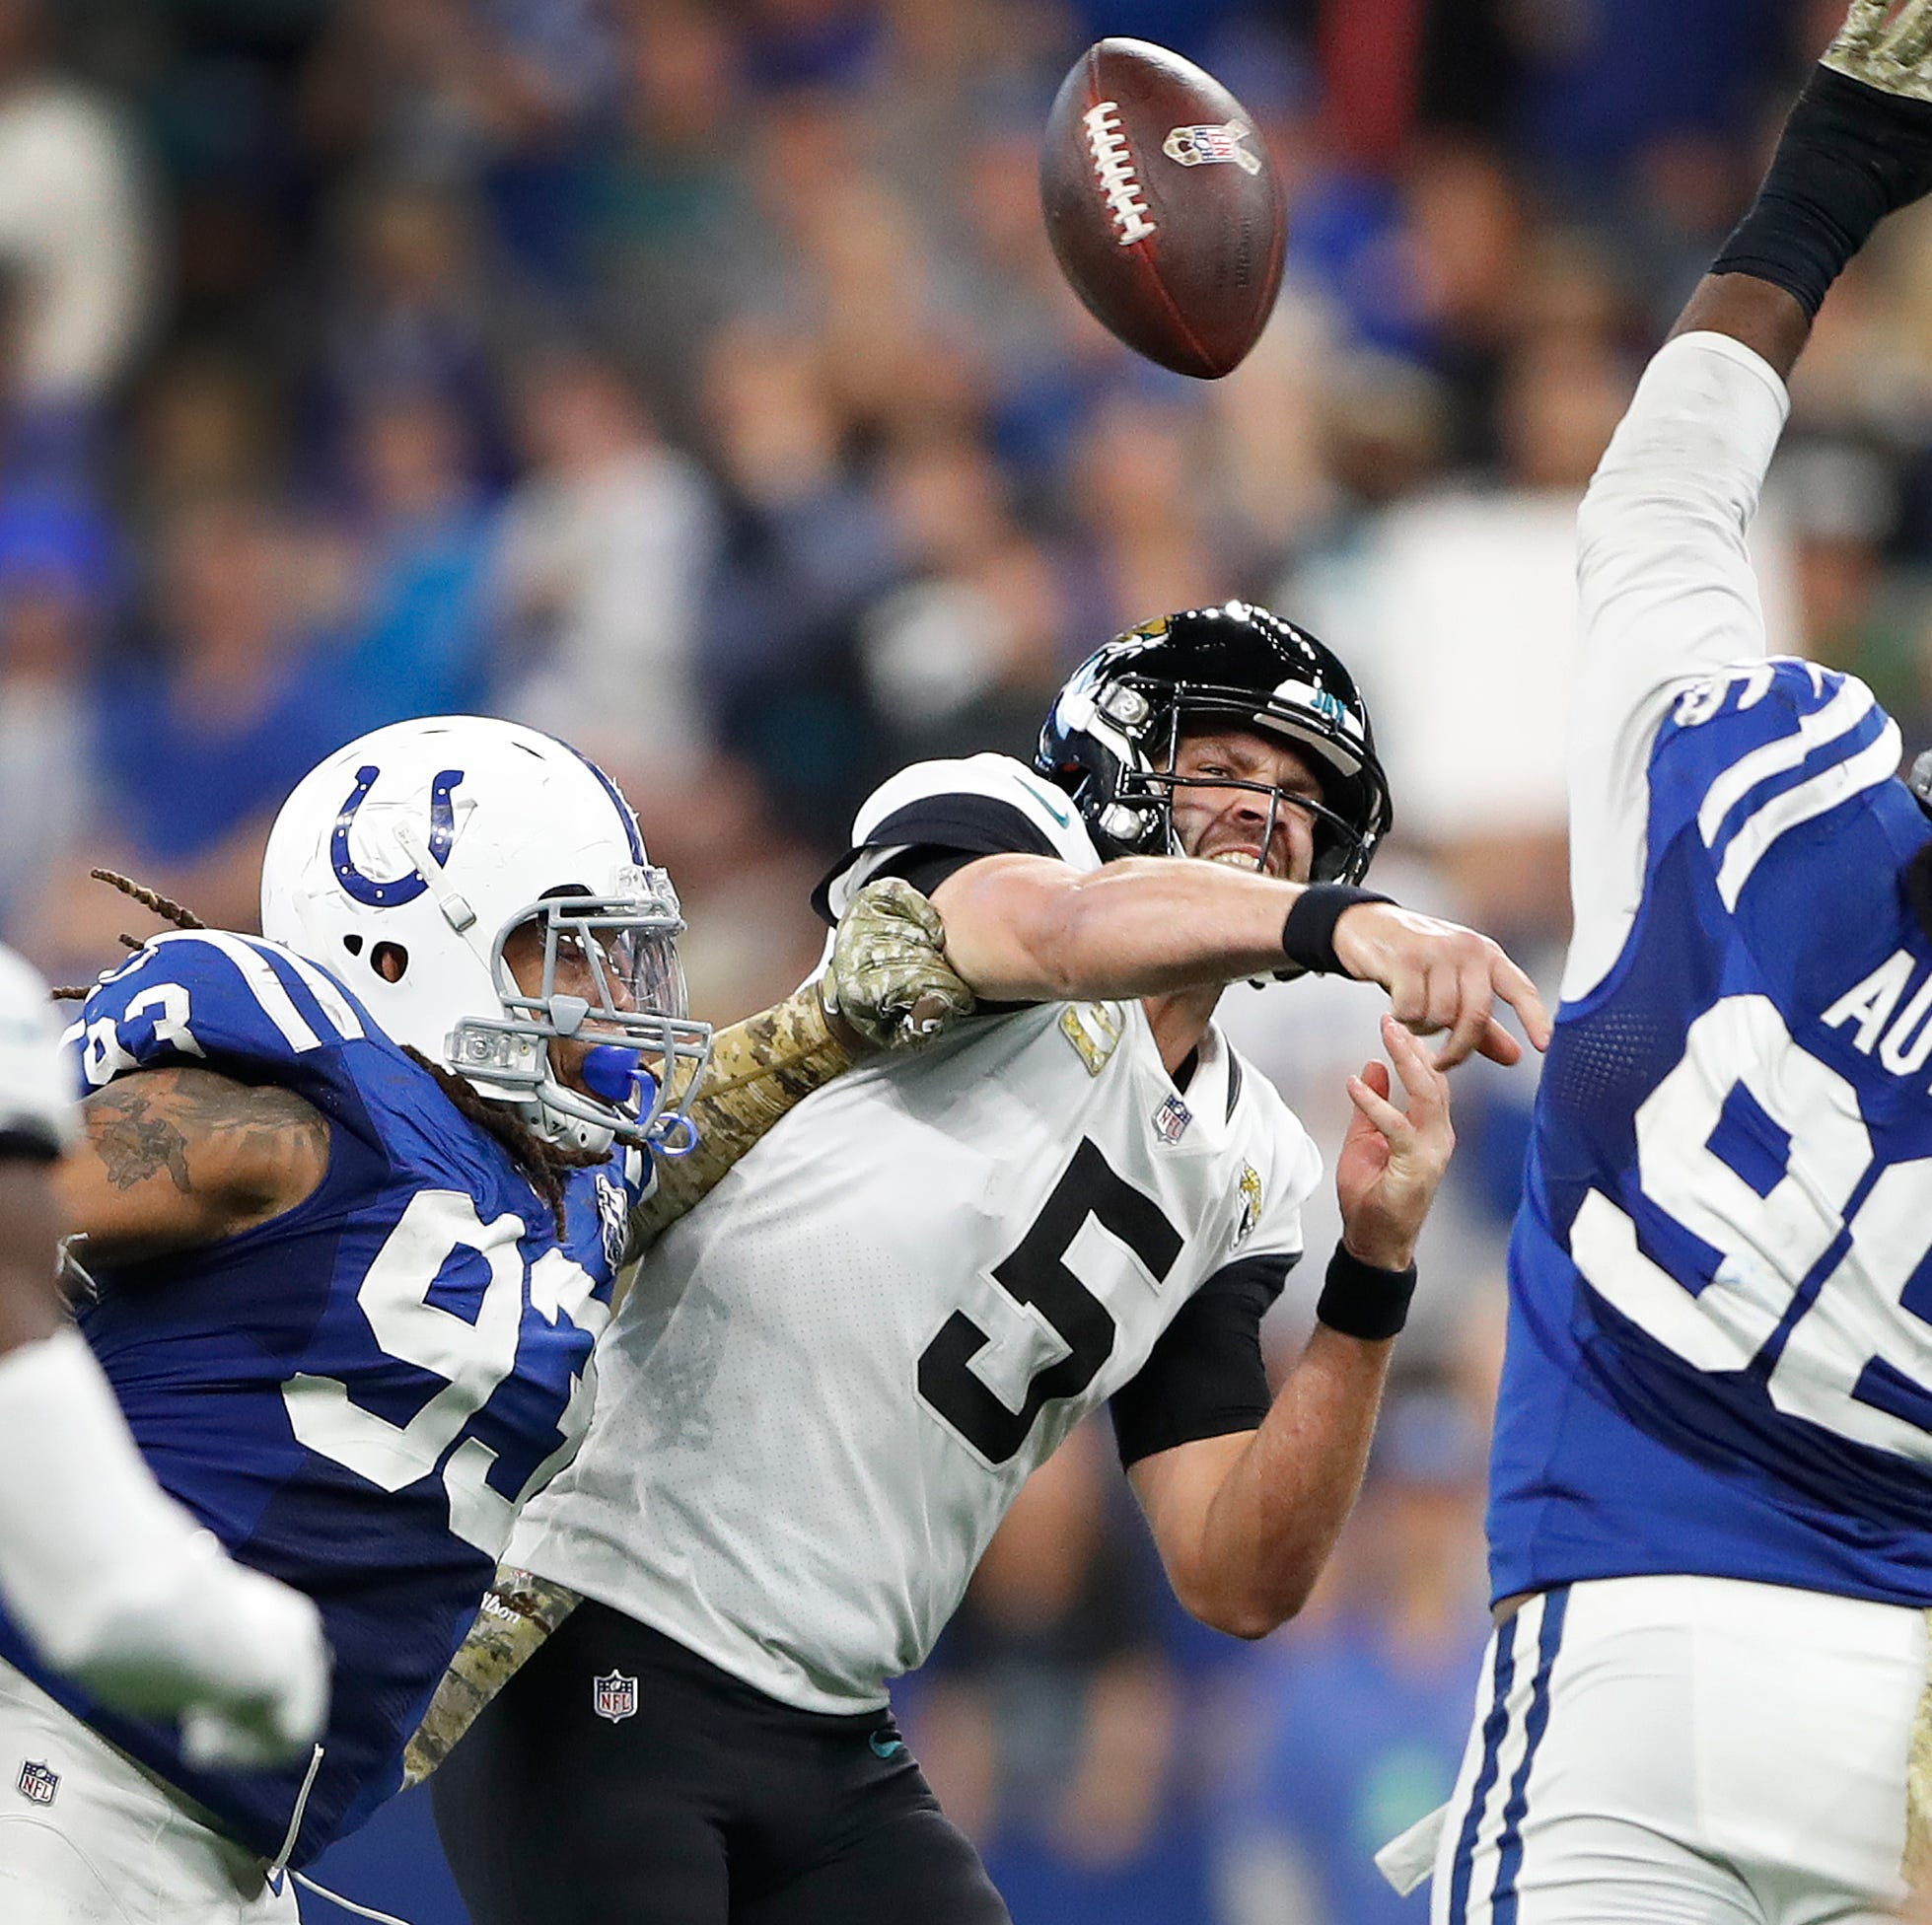 Insider: Colts pass rushers aren't making excuses, know they need to start getting sacks